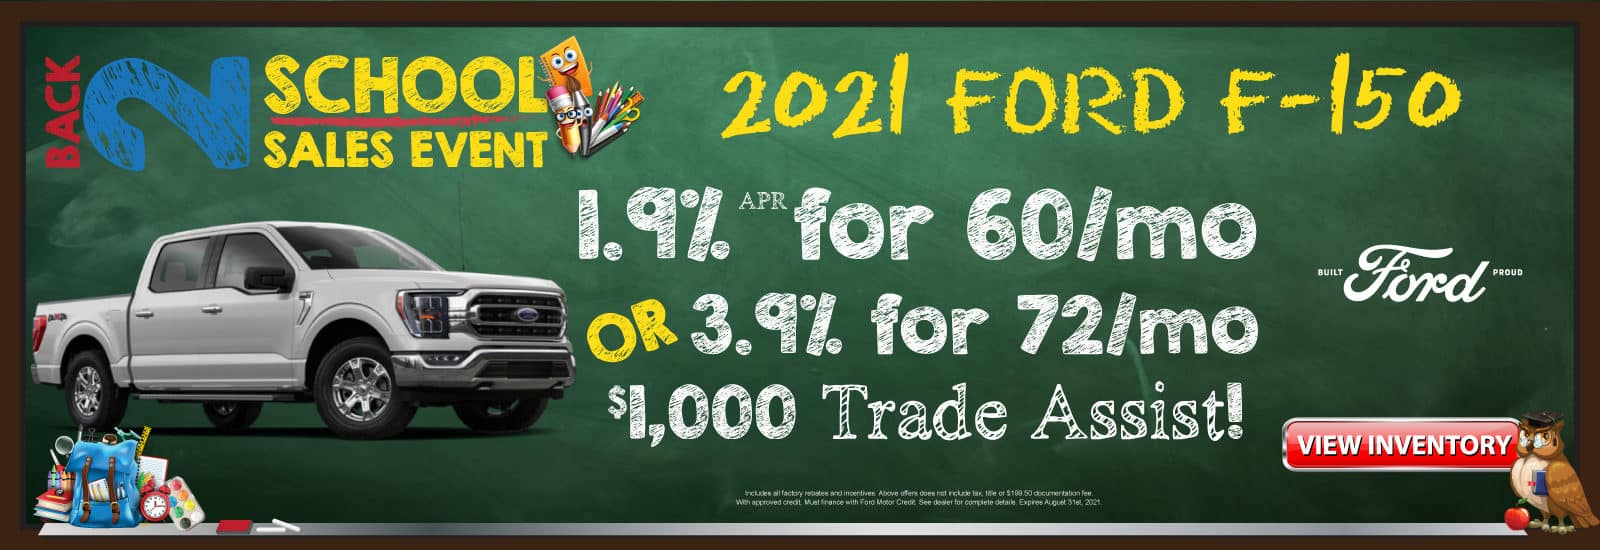 2021-Ford-F-150-Web-Banner-1600×550 (1)